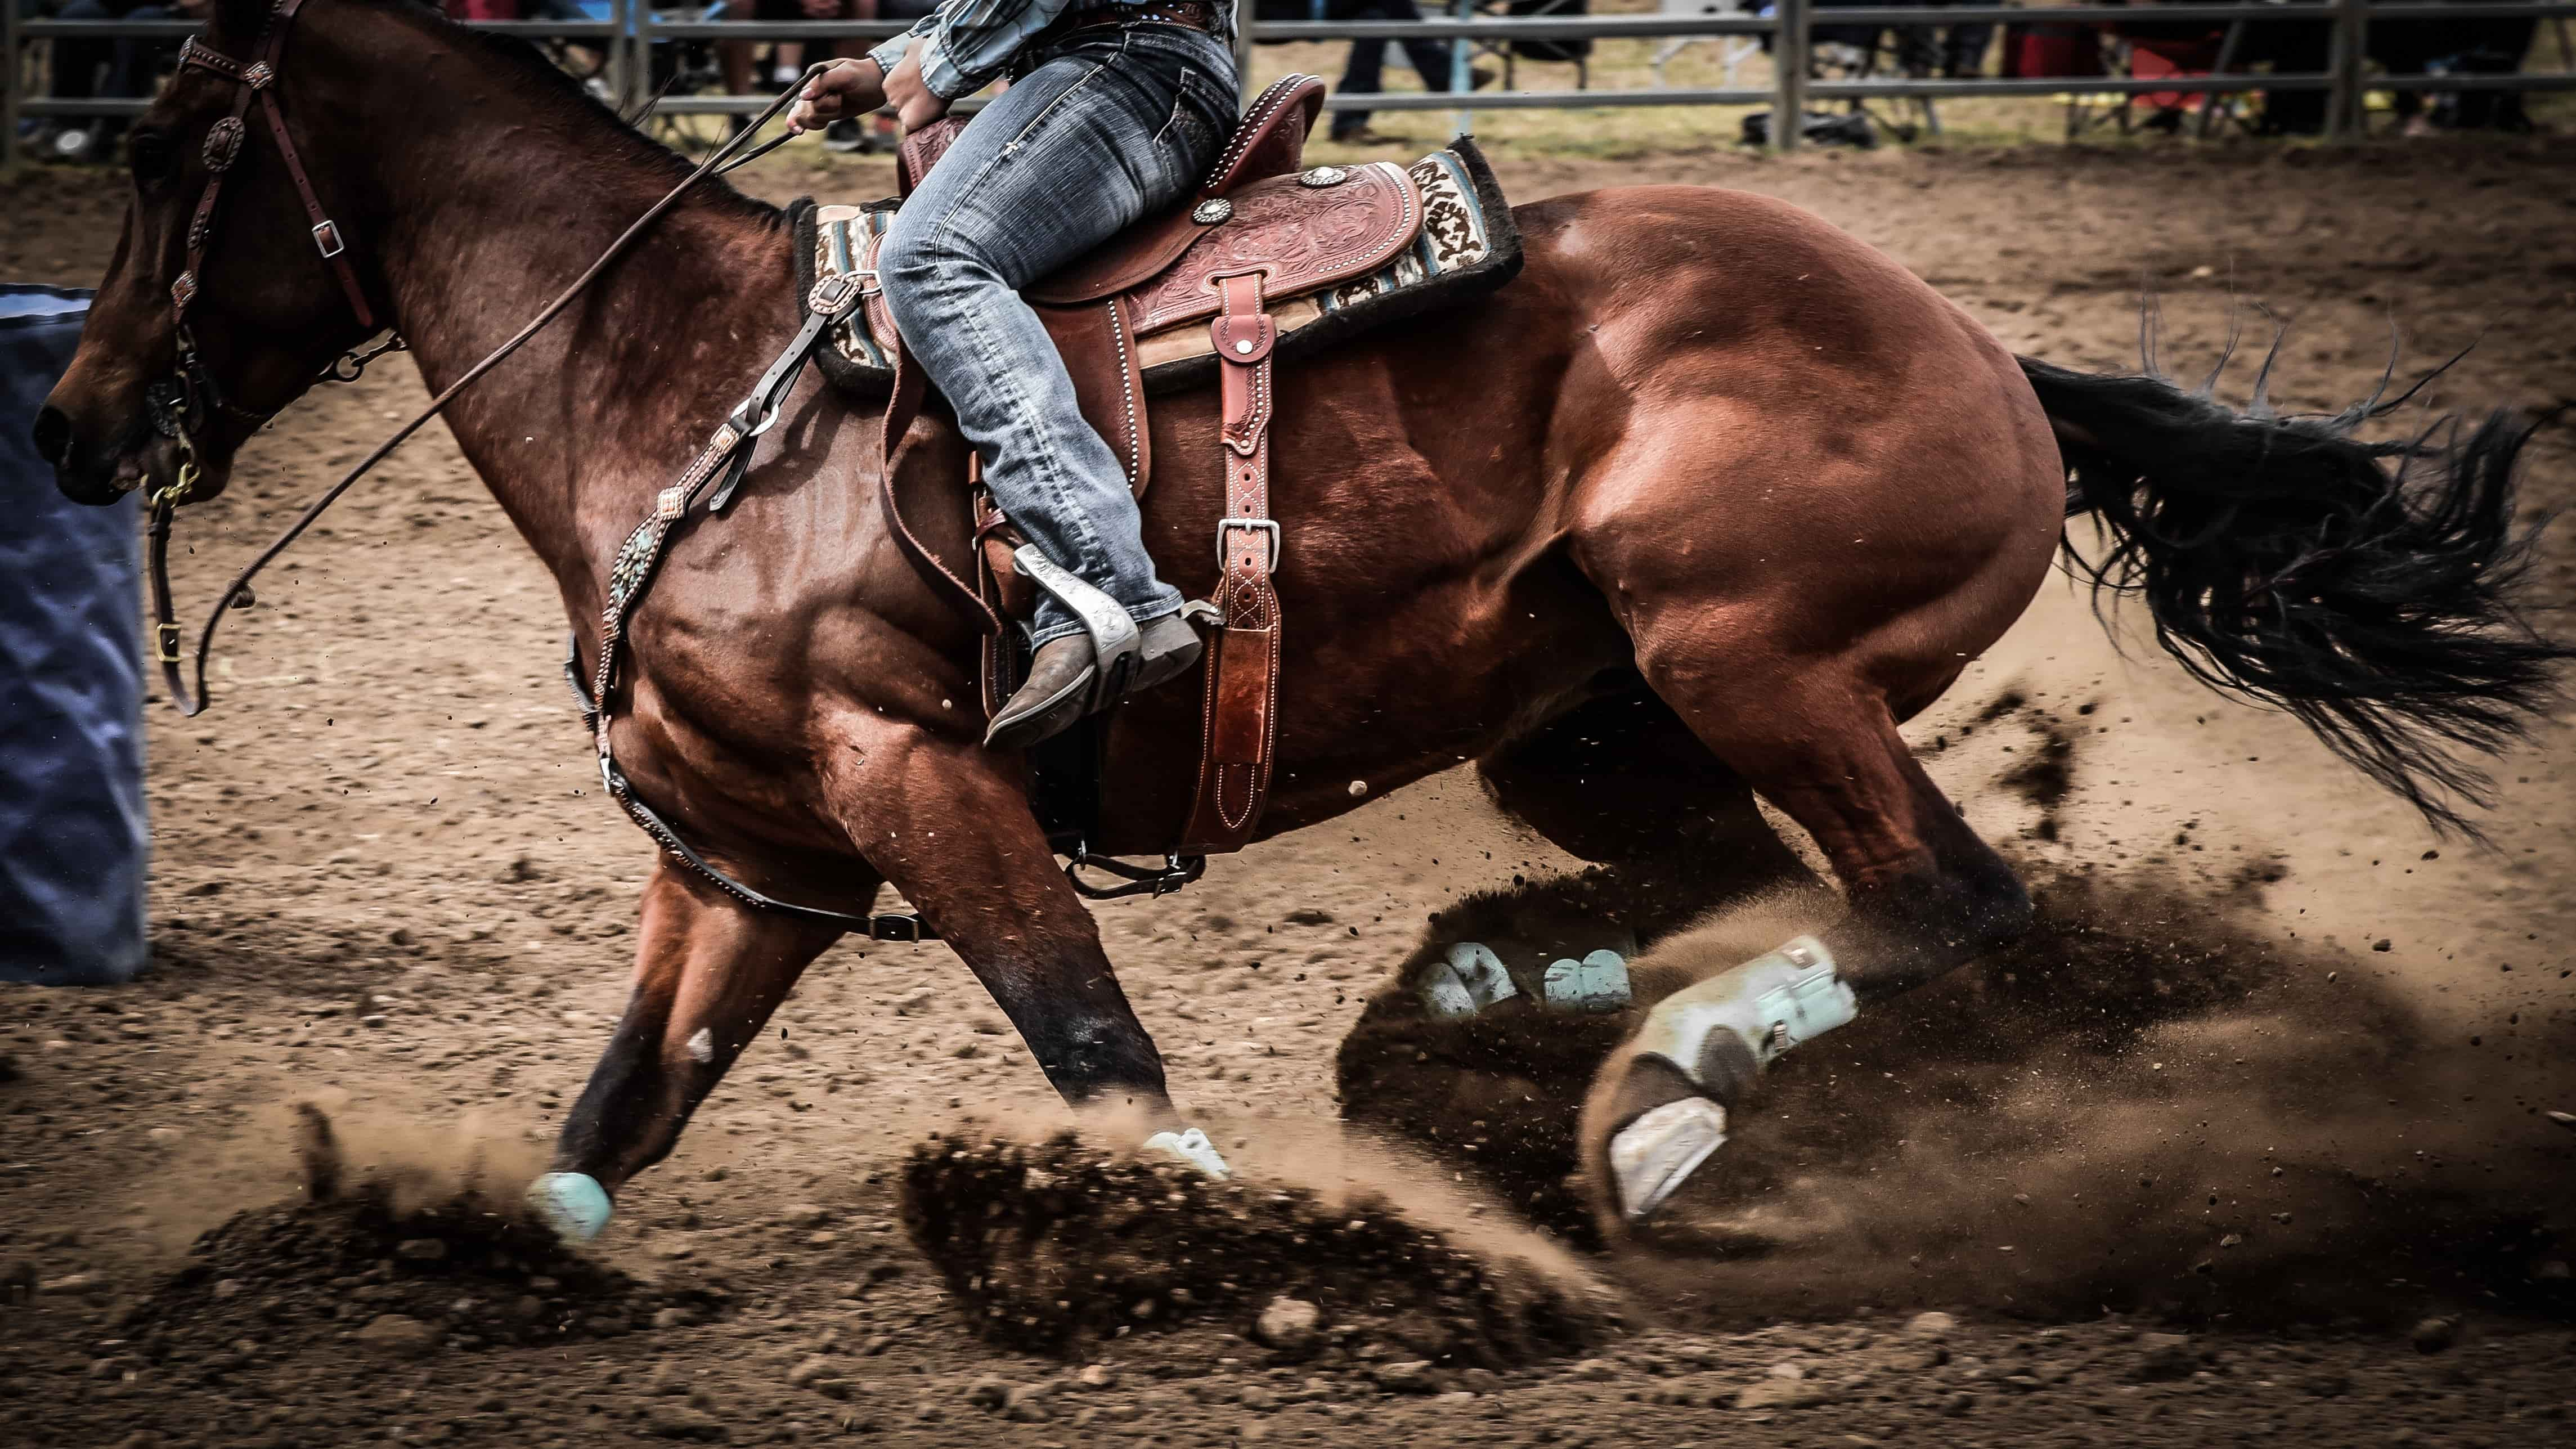 Horse turning quickly through dirt with rider on top.